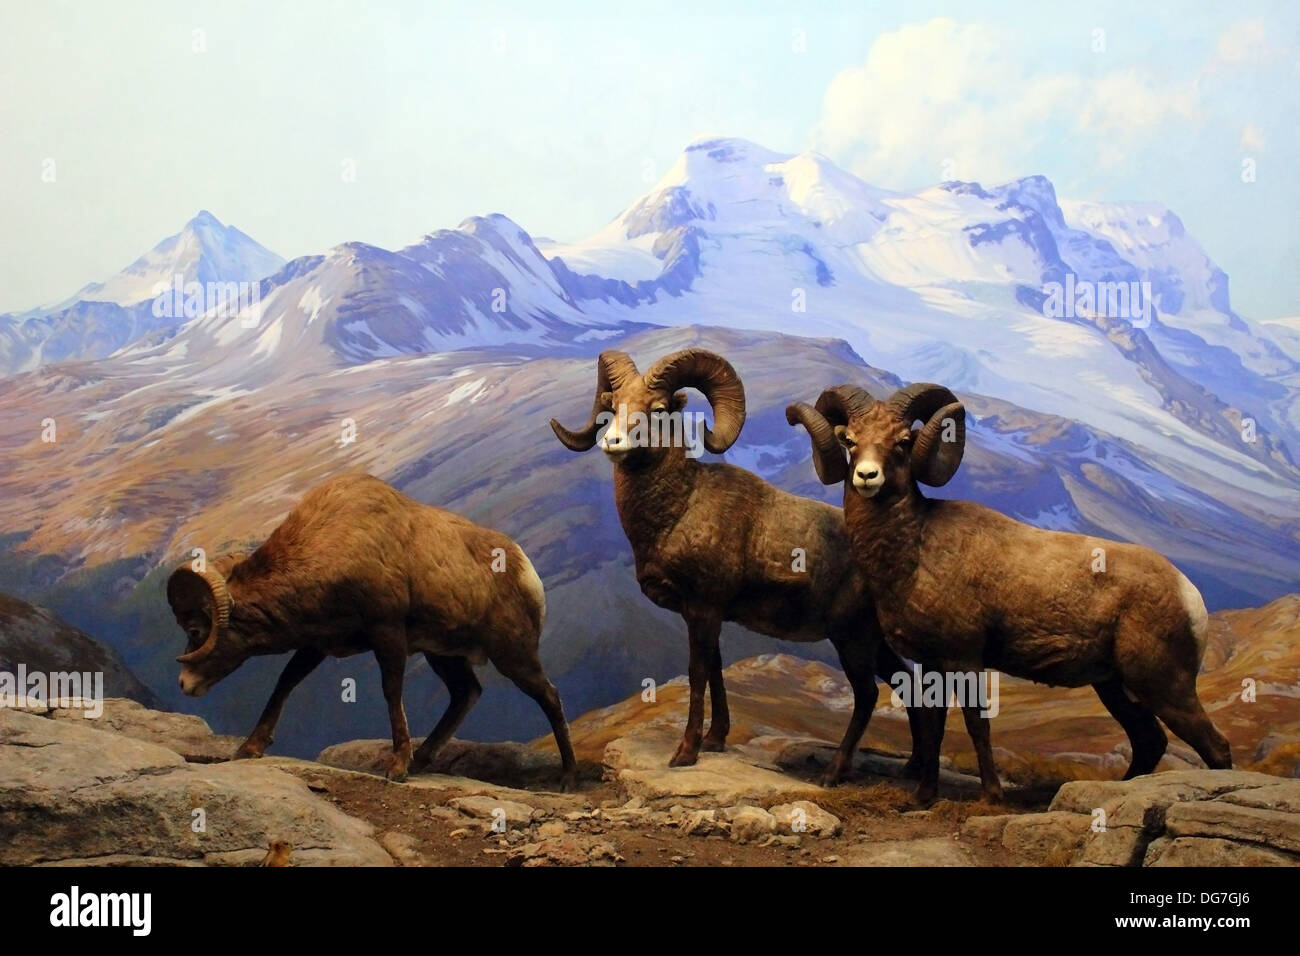 A diorama of Big Horn Sheep displayed at the American Museum of Natural History in New York City. - Stock Image